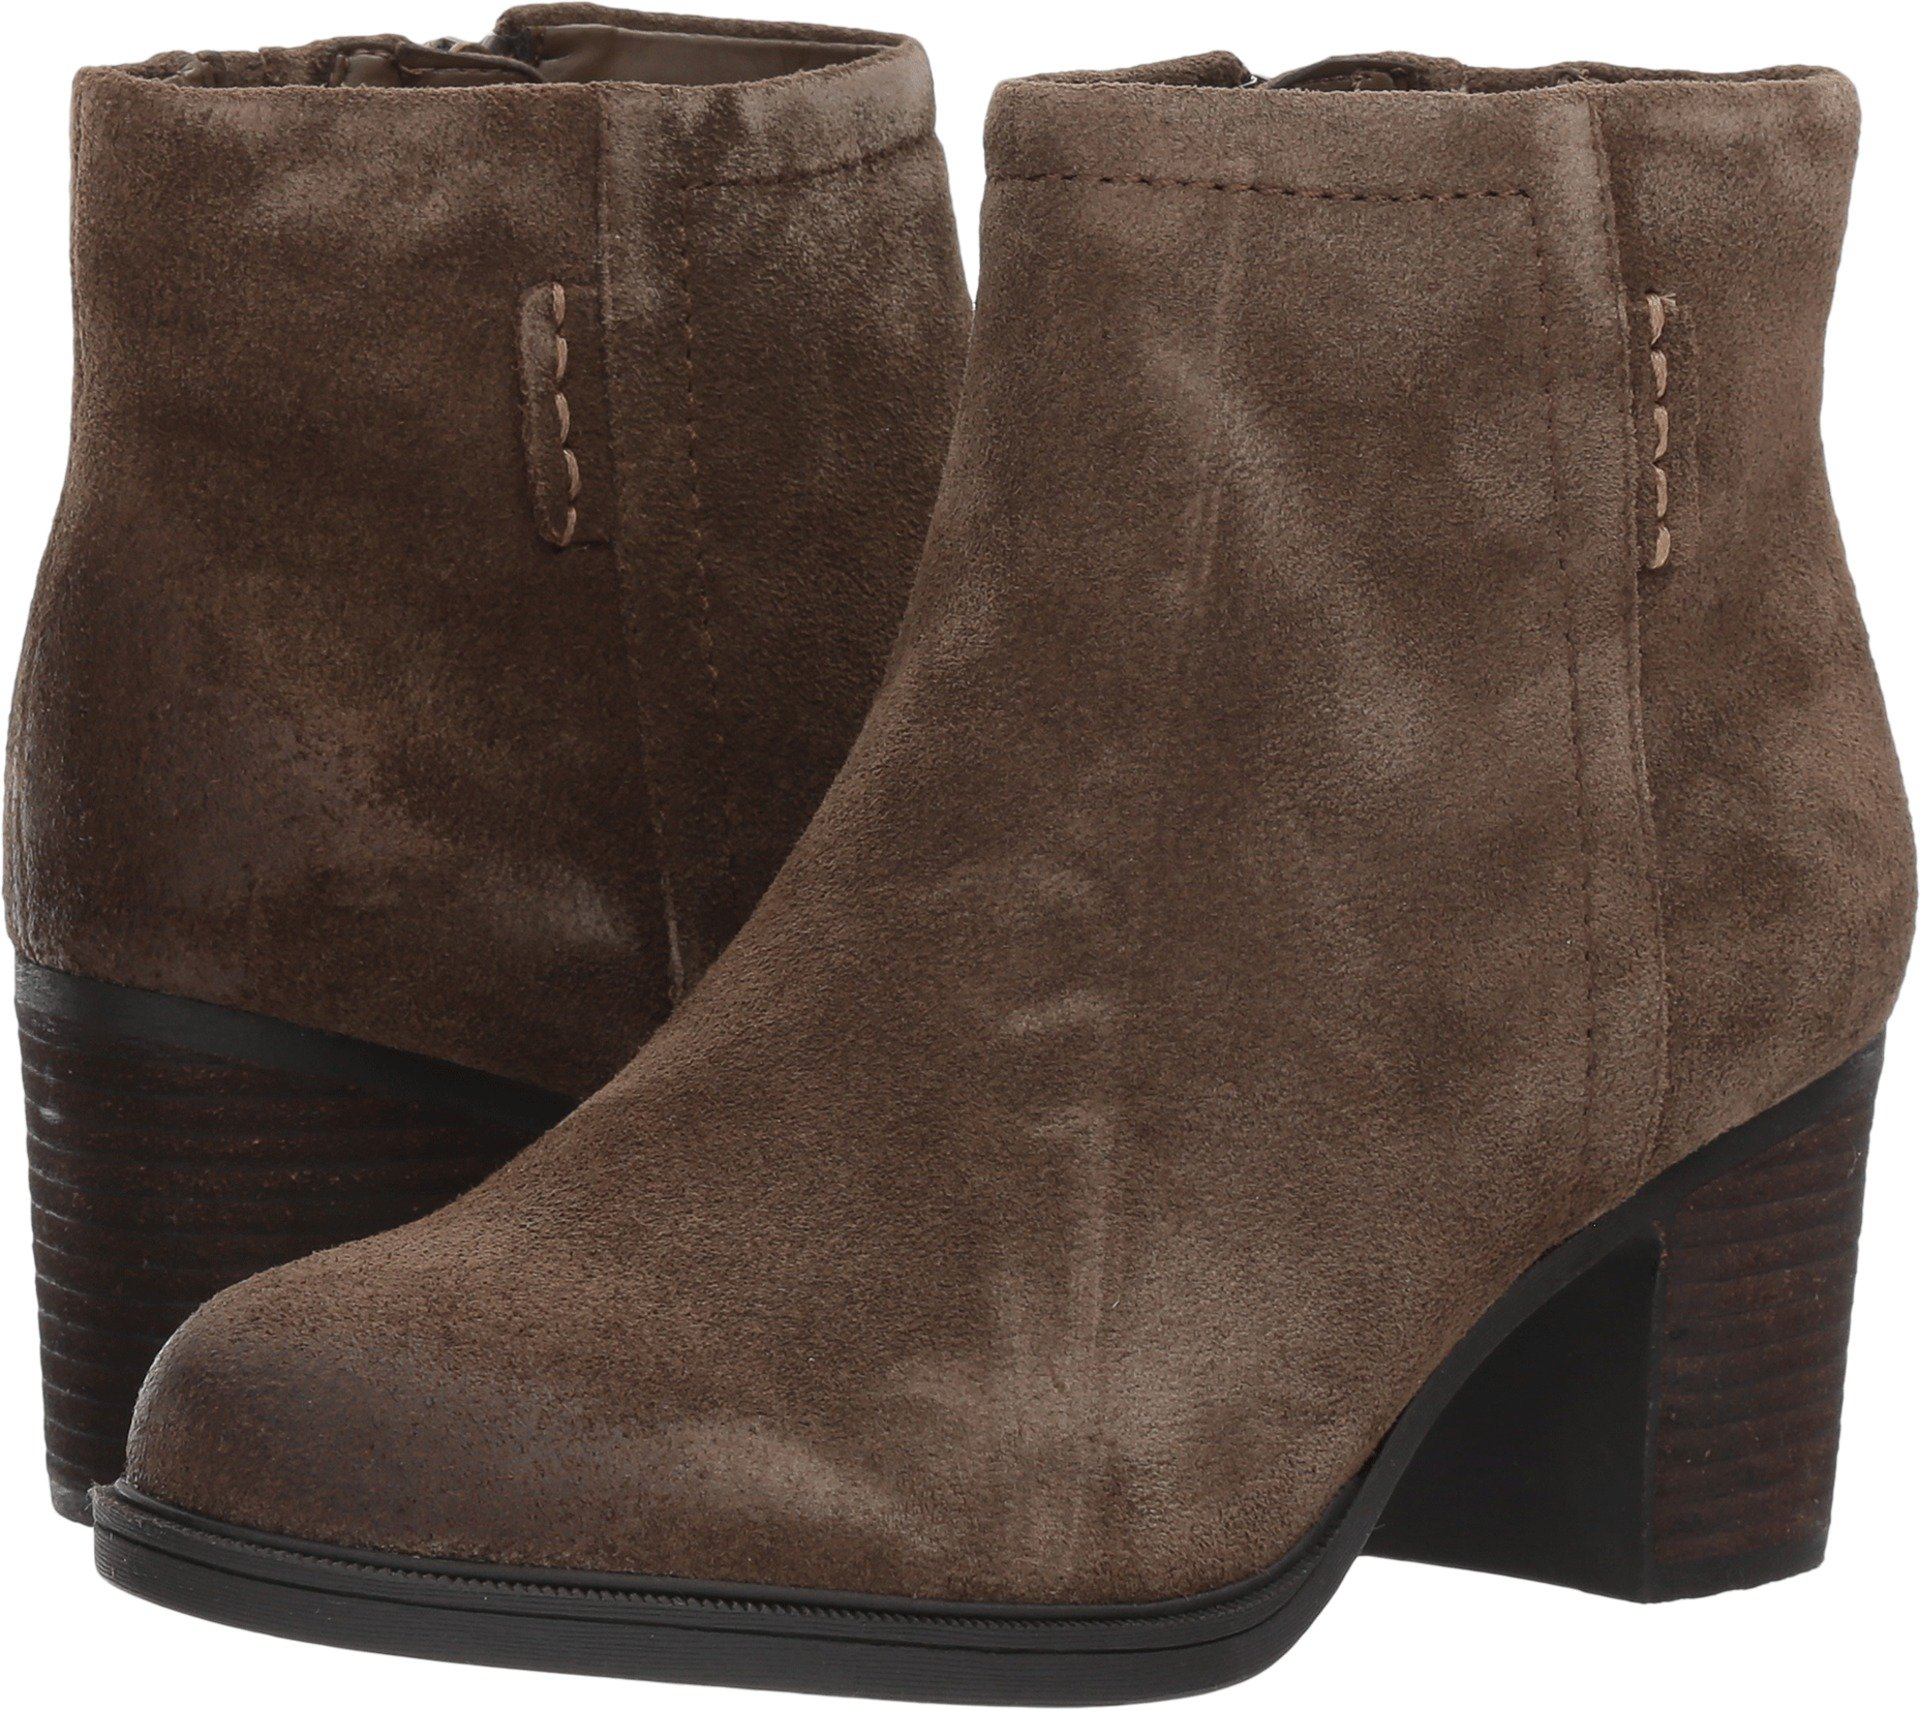 Rockport Cobb Hill Collection Women's Cobb Hill Natashya Bootie Caribou Suede Shoe by RACKPOT Cobb Hill COLLECTION